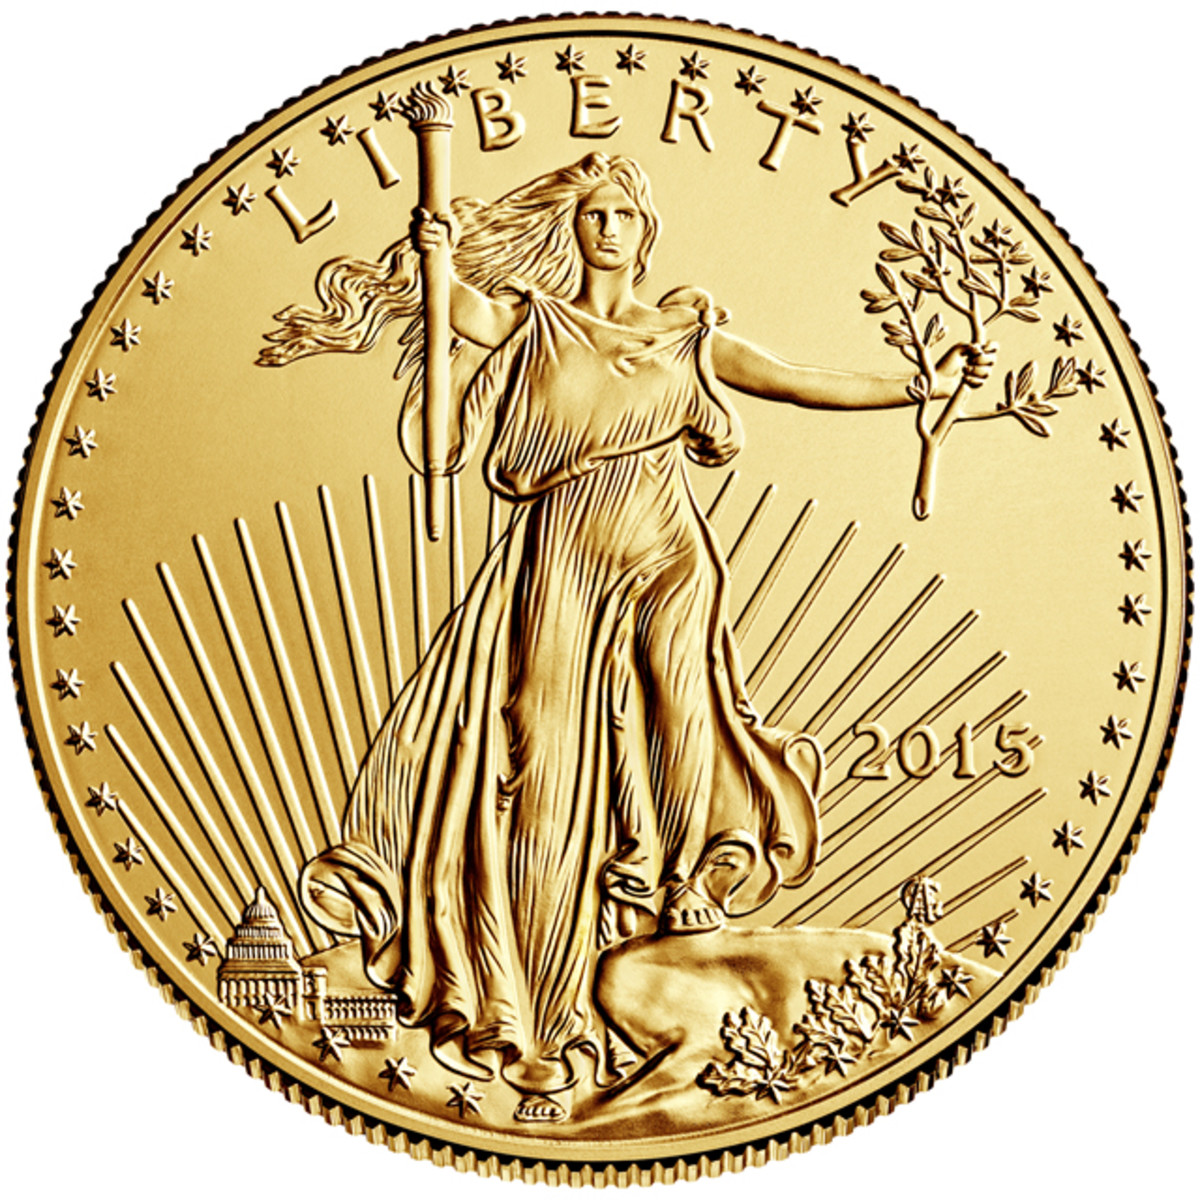 With a falling gold price and economic troubles across the globe, some investors are putting their money in gold.